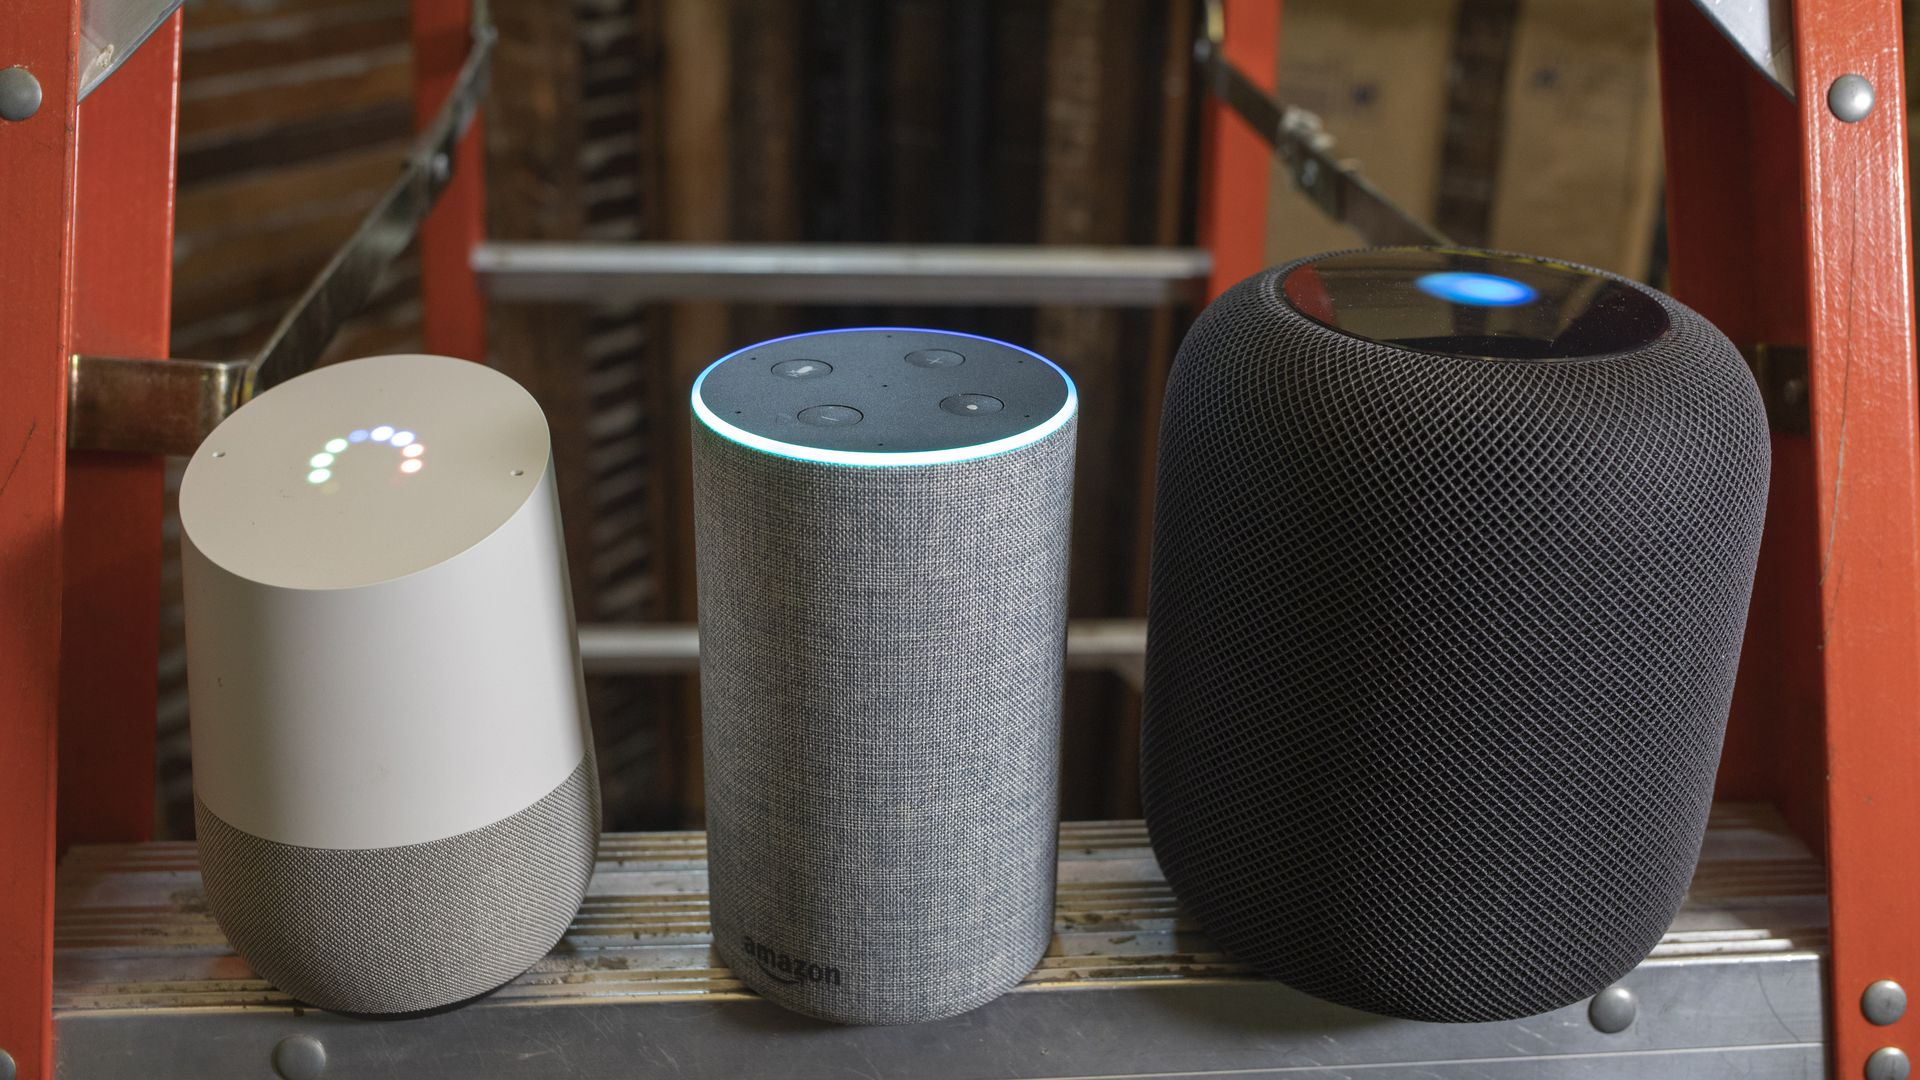 Smart speakers from Google, Amazon and Apple